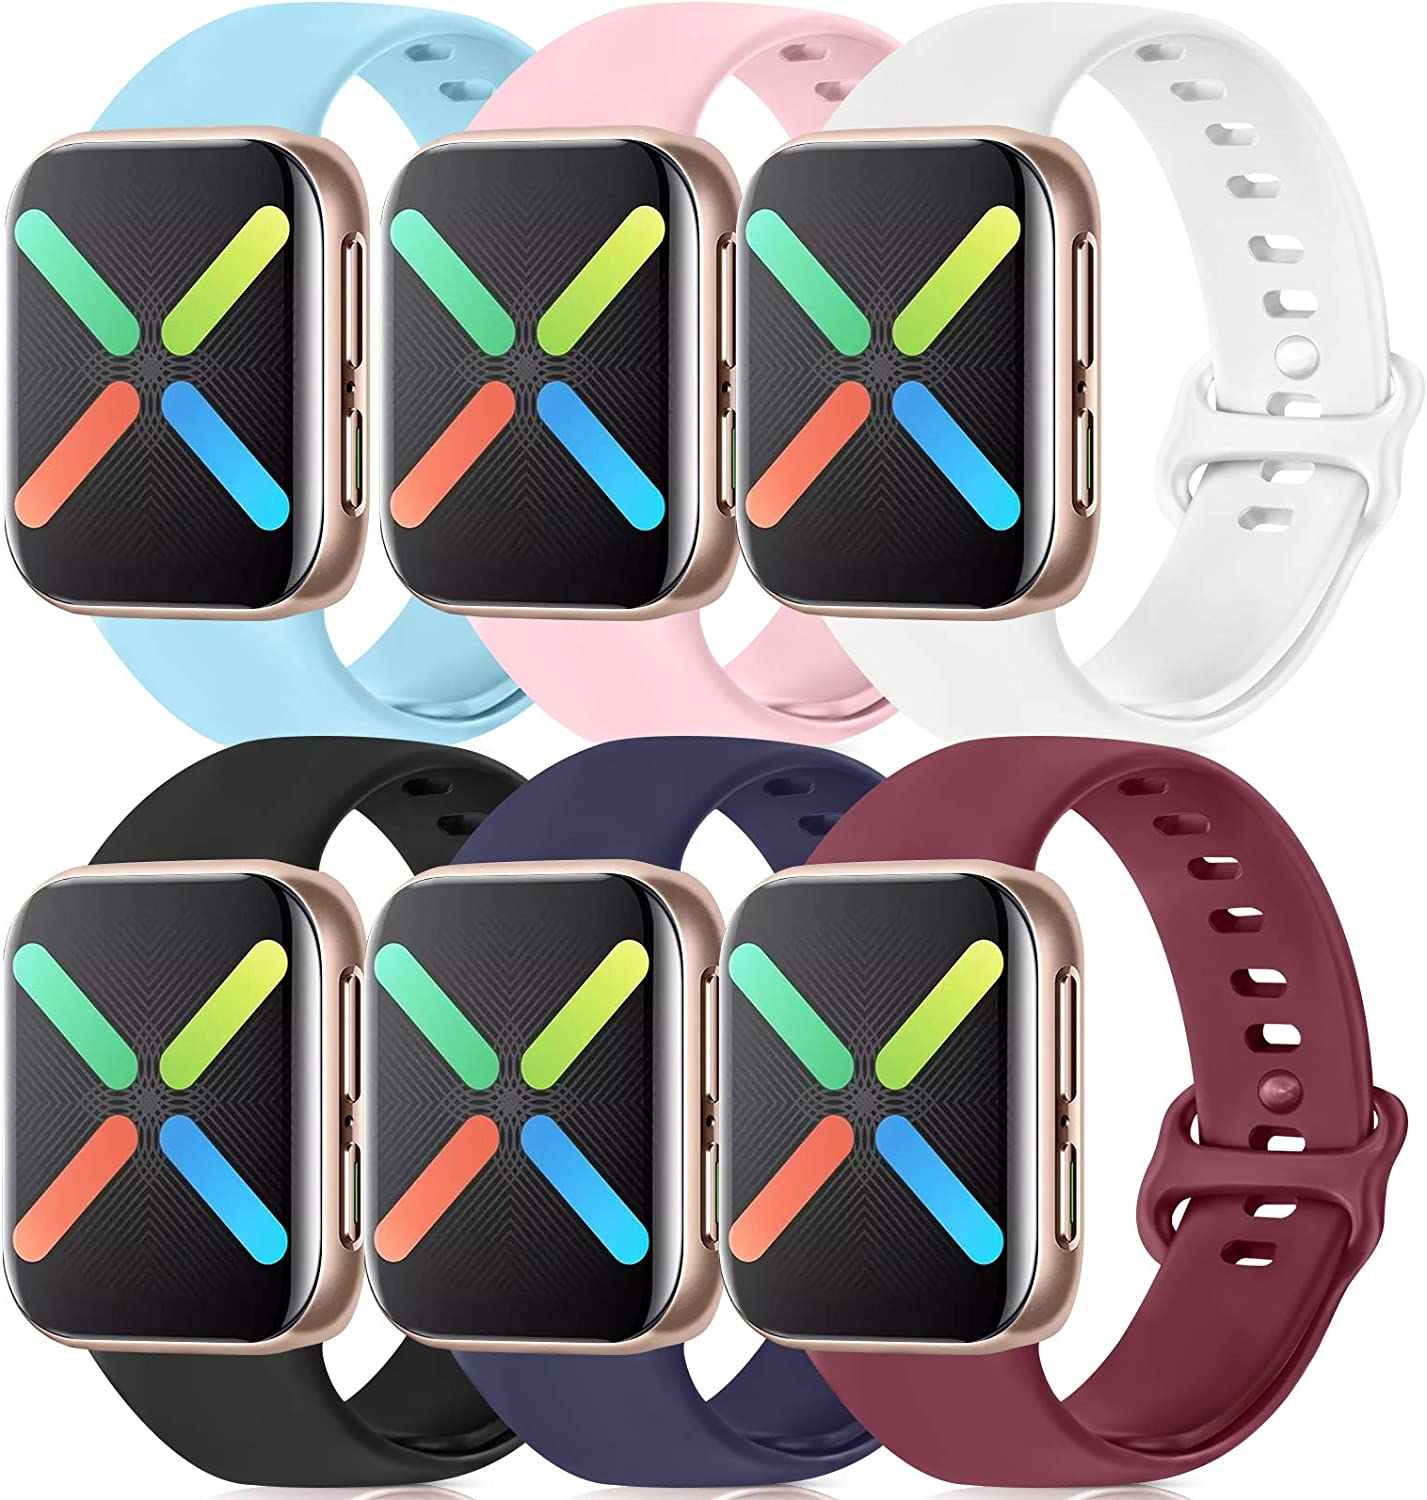 Silicone Bands Compatible with Apple Watch Bands 38mm 40mm 42mm 44mm, Soft Wristbands Compatible with iWatch Bands (Black/Navy Blue/Wine Red/Pink/White/Baby Blue, 42mm/44mm-S/M )